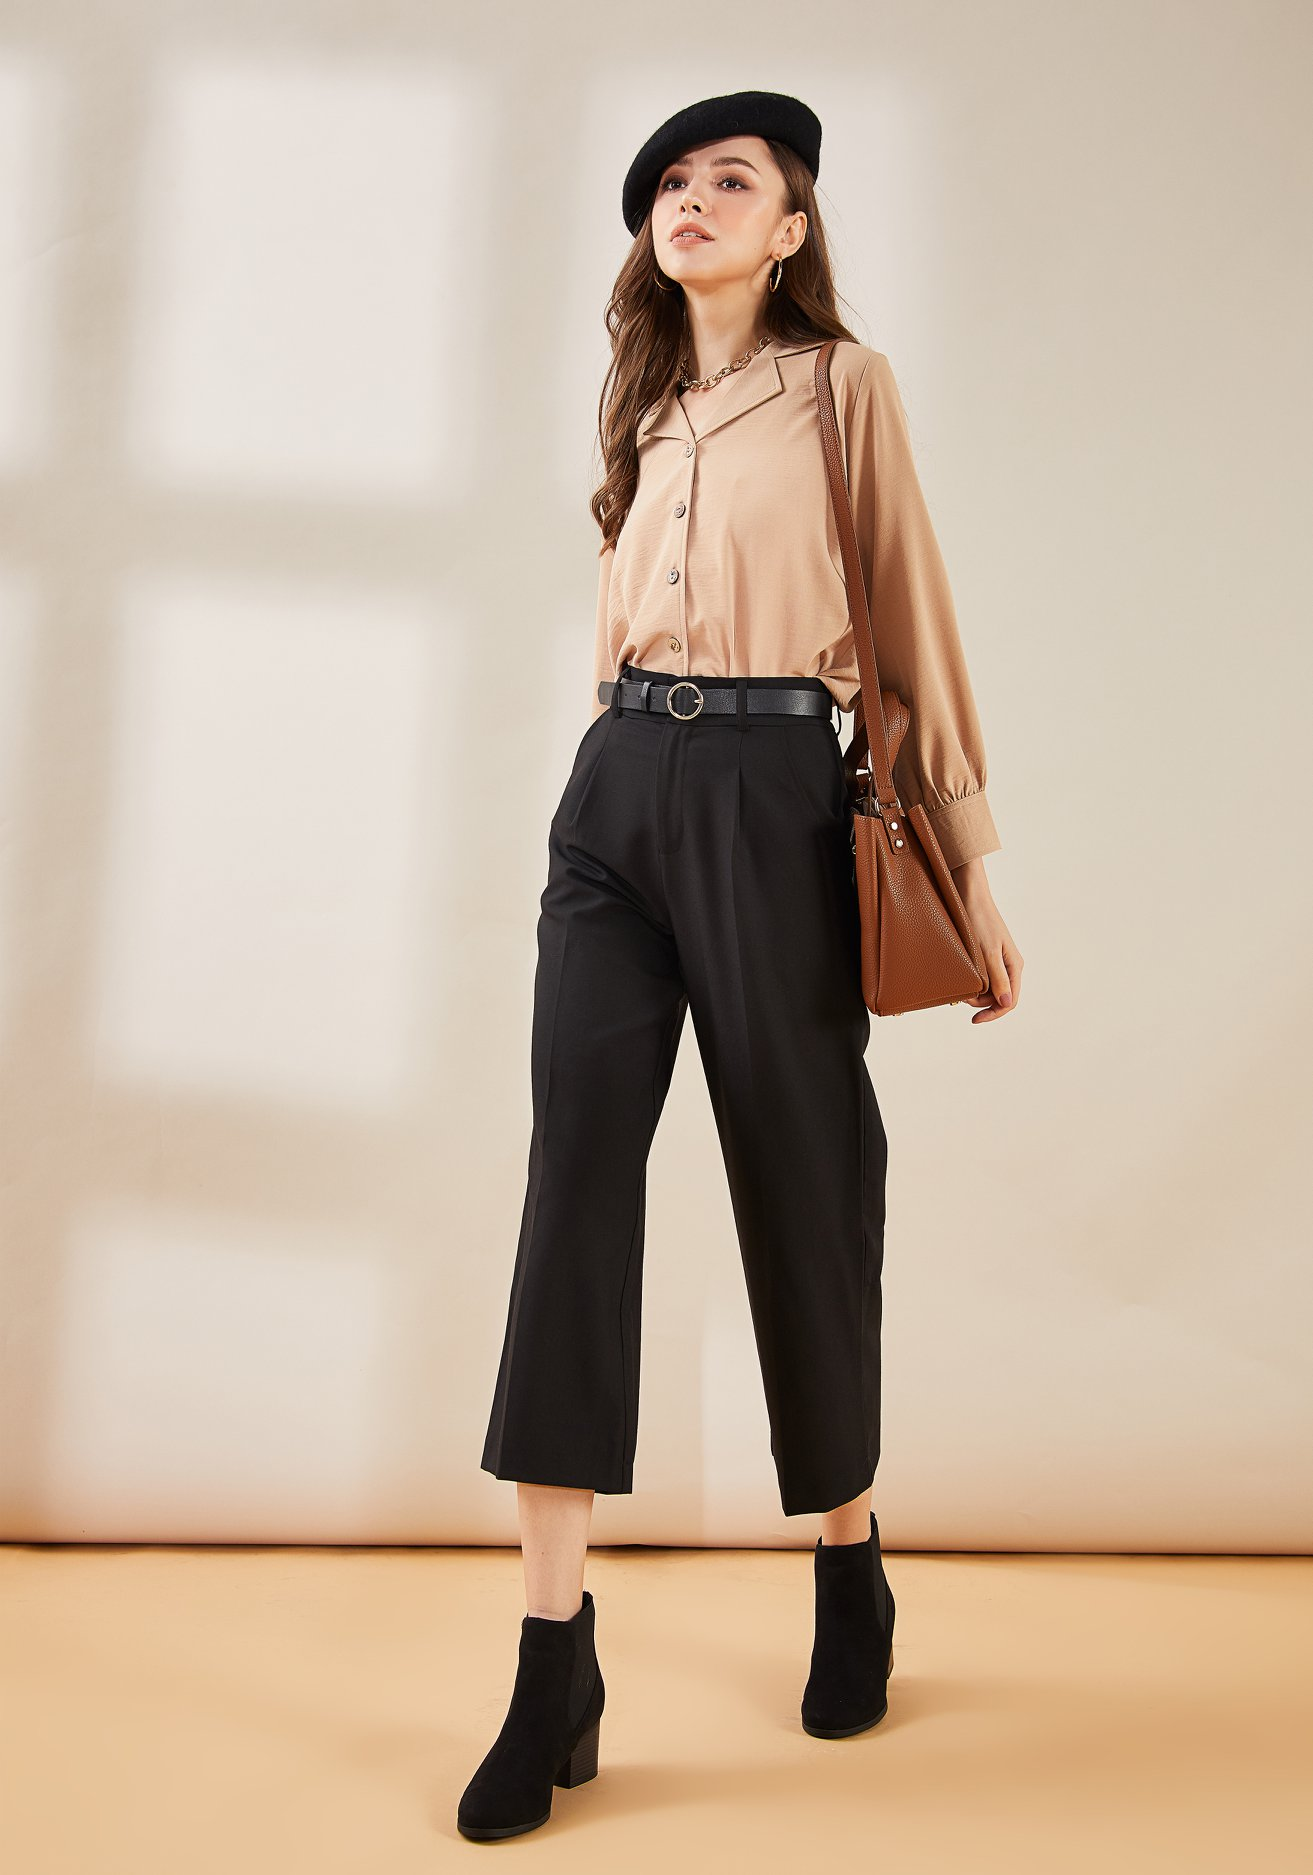 MIKI FOR WOMAN – PANTS COLLECTION